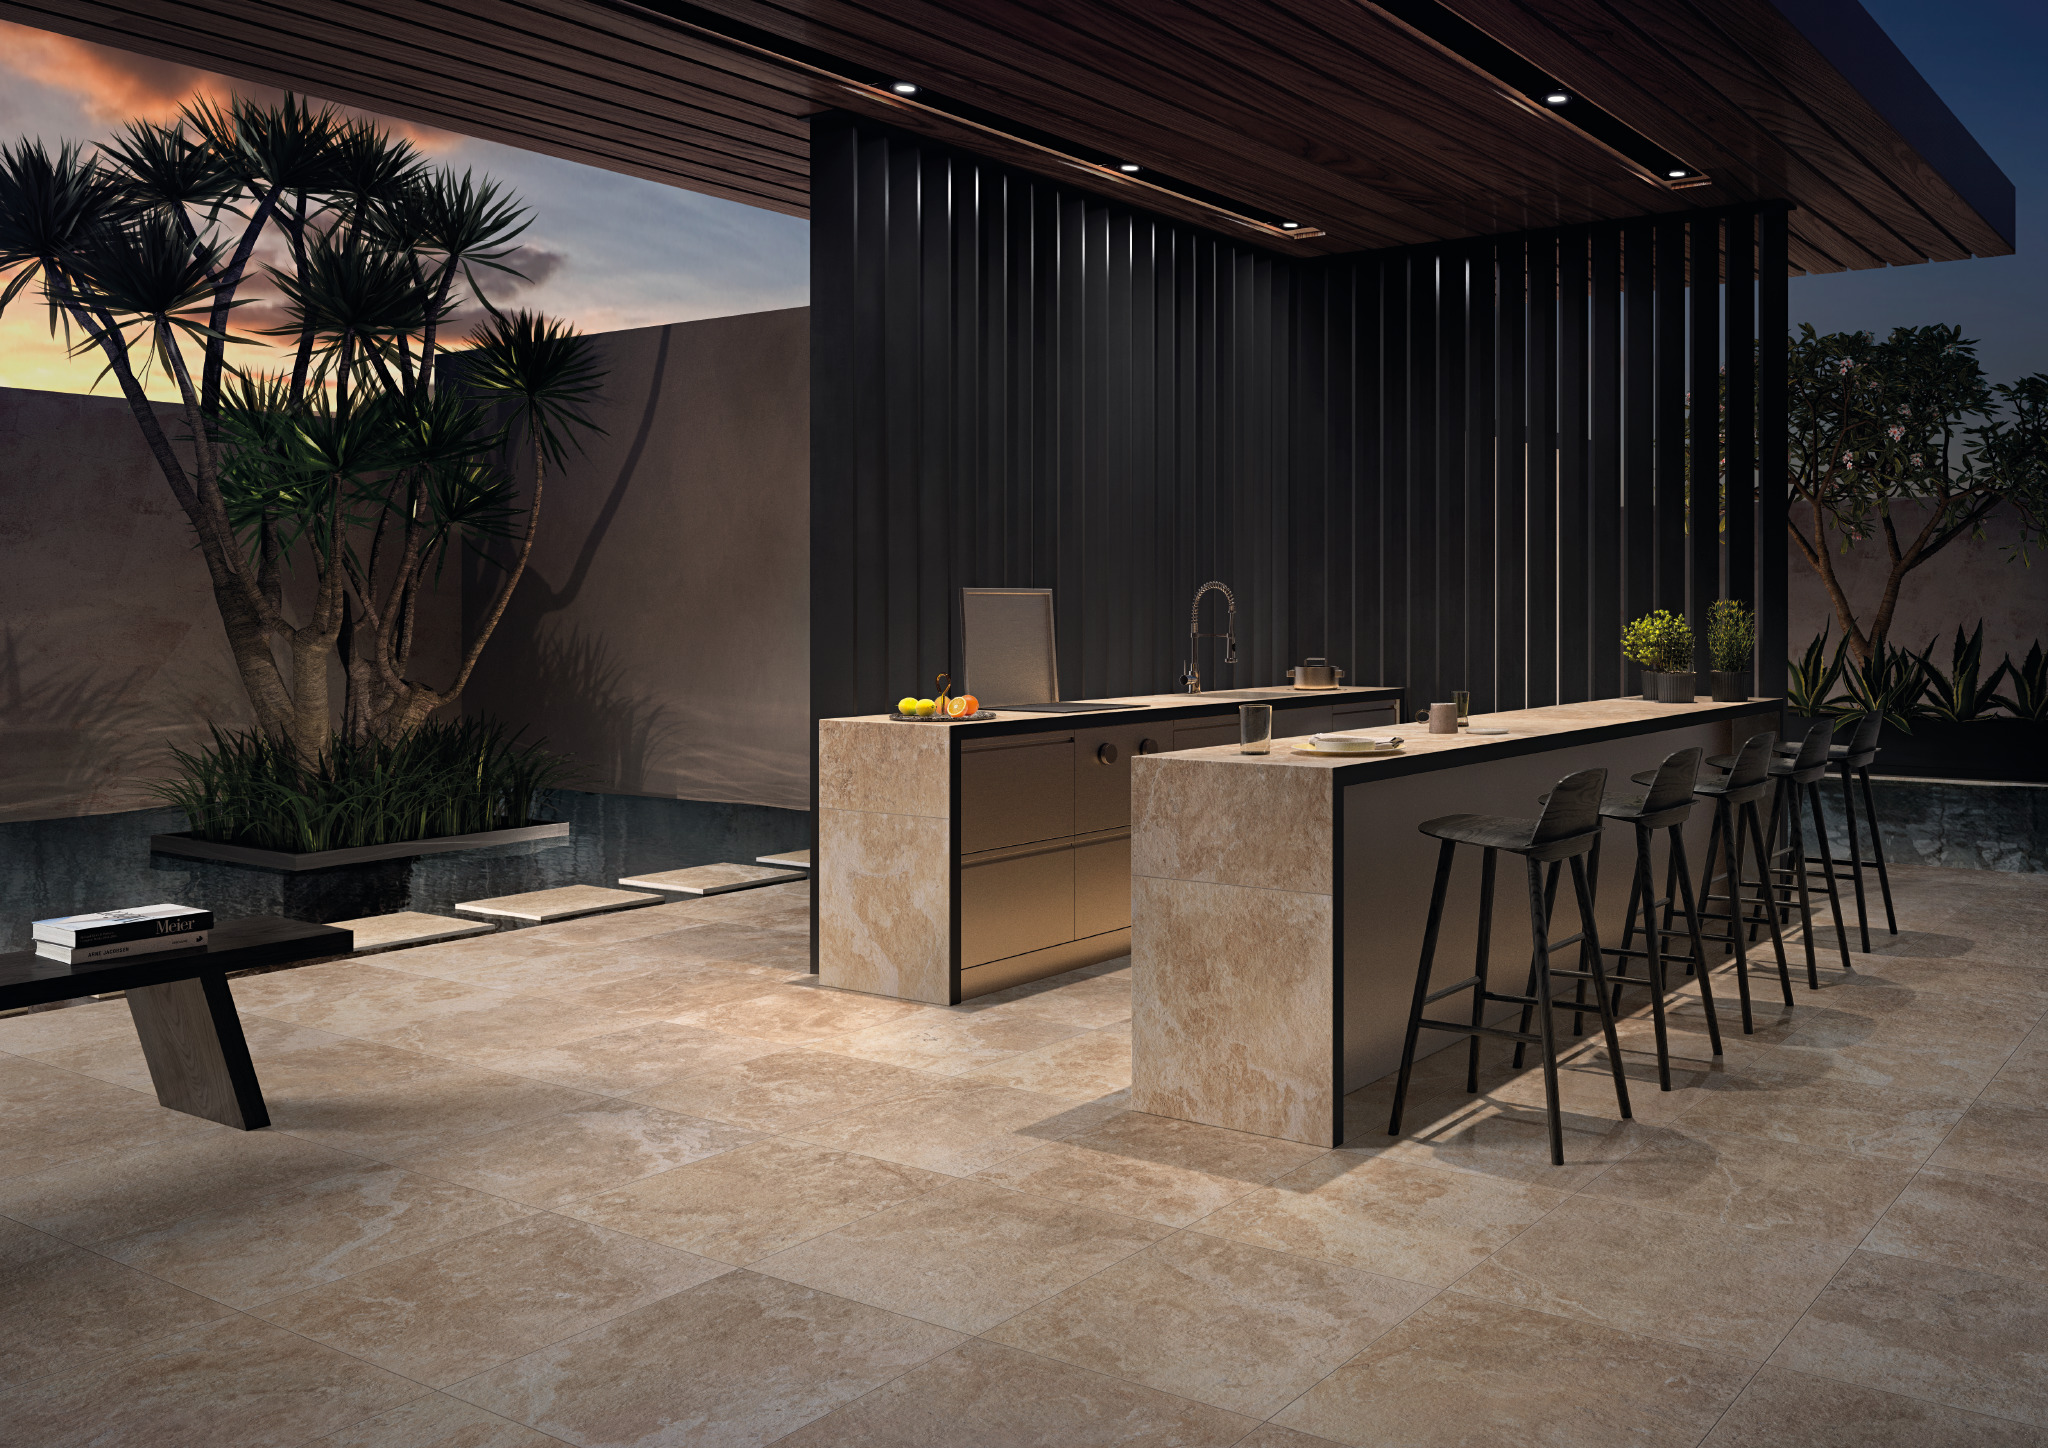 Stone-look tile flooring and countertops in an outdoor kitchen